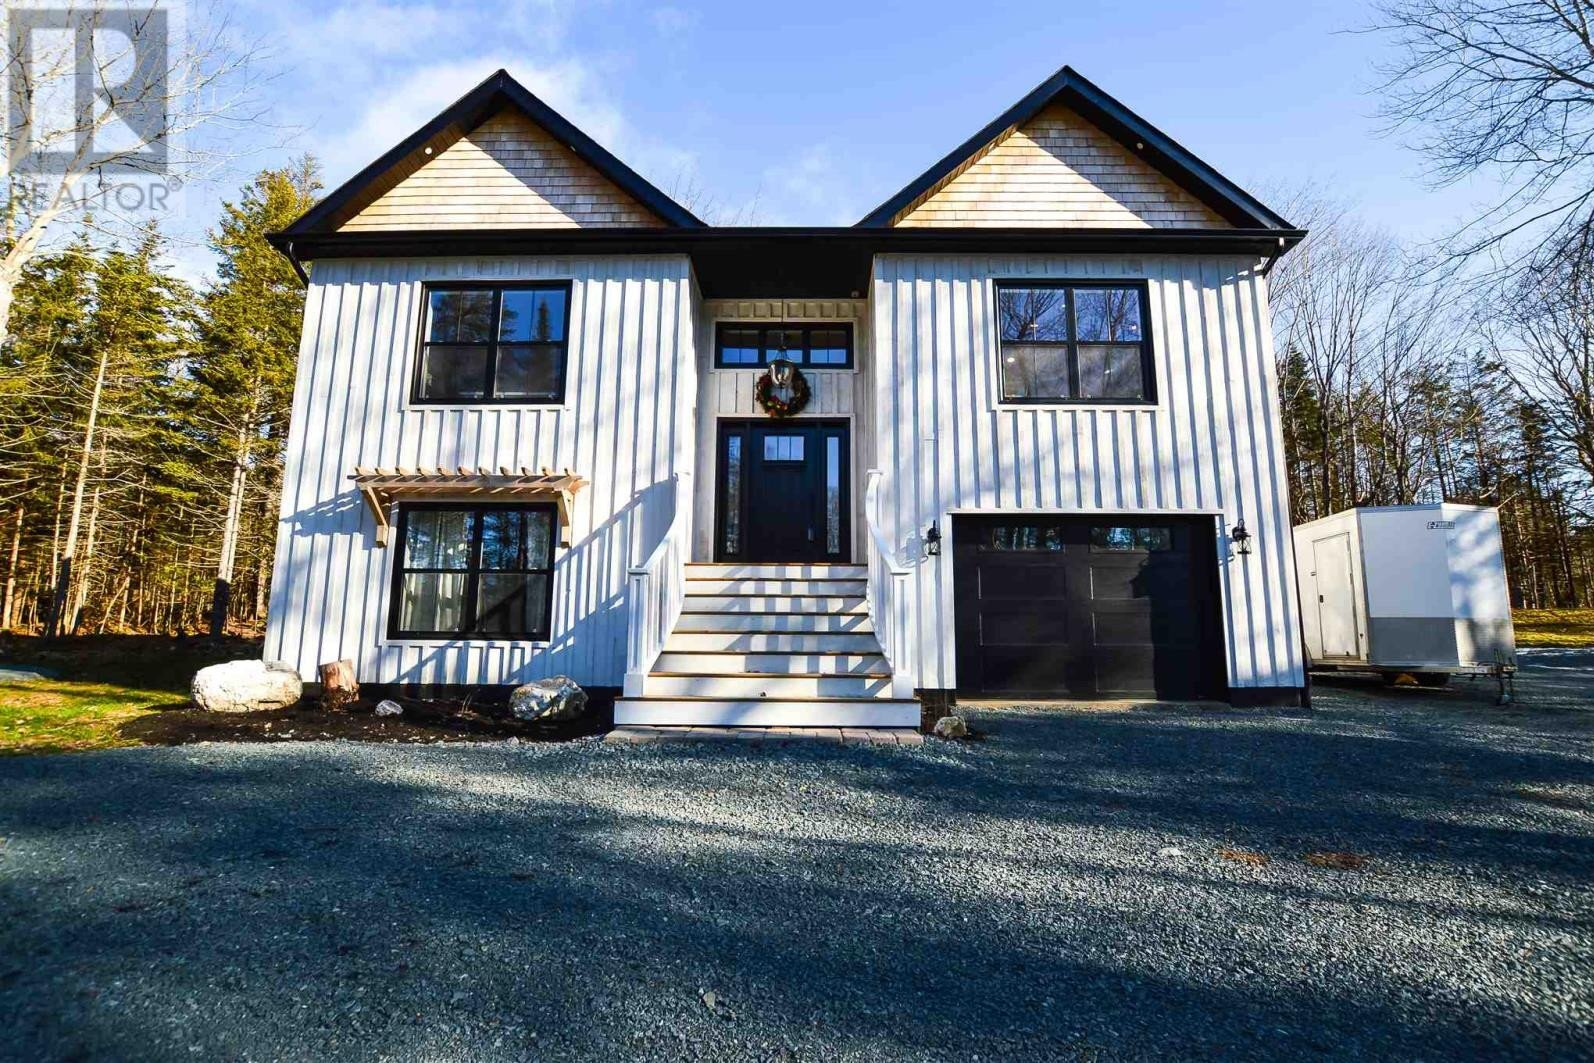 Fall River MLS® Listings & Real Estate for Sale  Zolo.ca